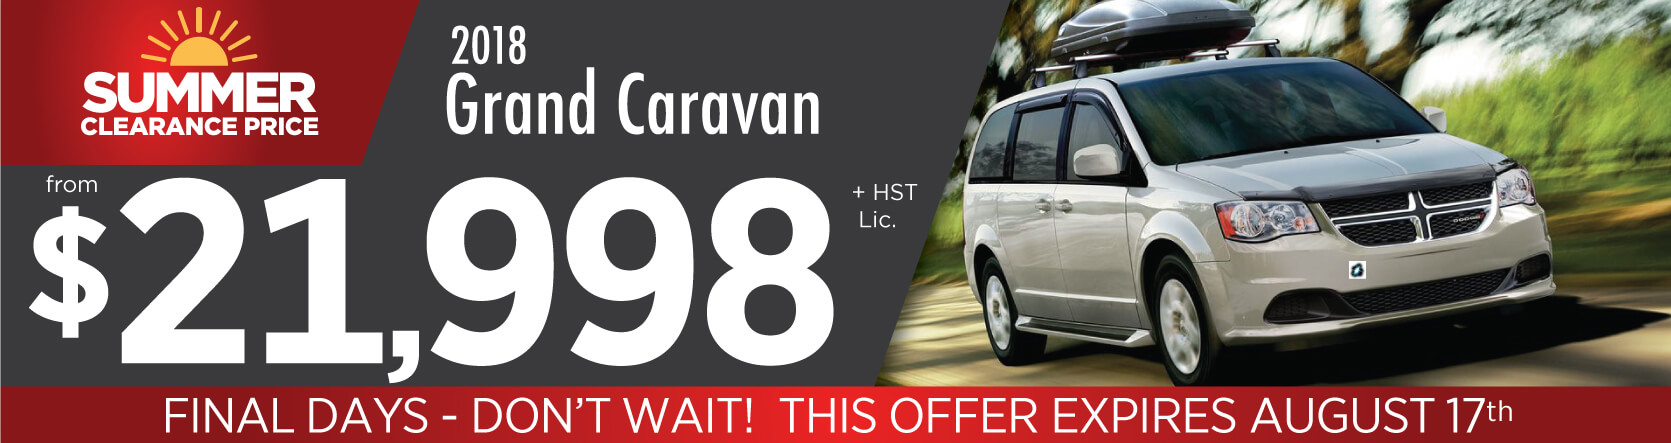 CD-2018-Grand-Caravan-Special-Price-TEST-2-Slider-Aug-2018